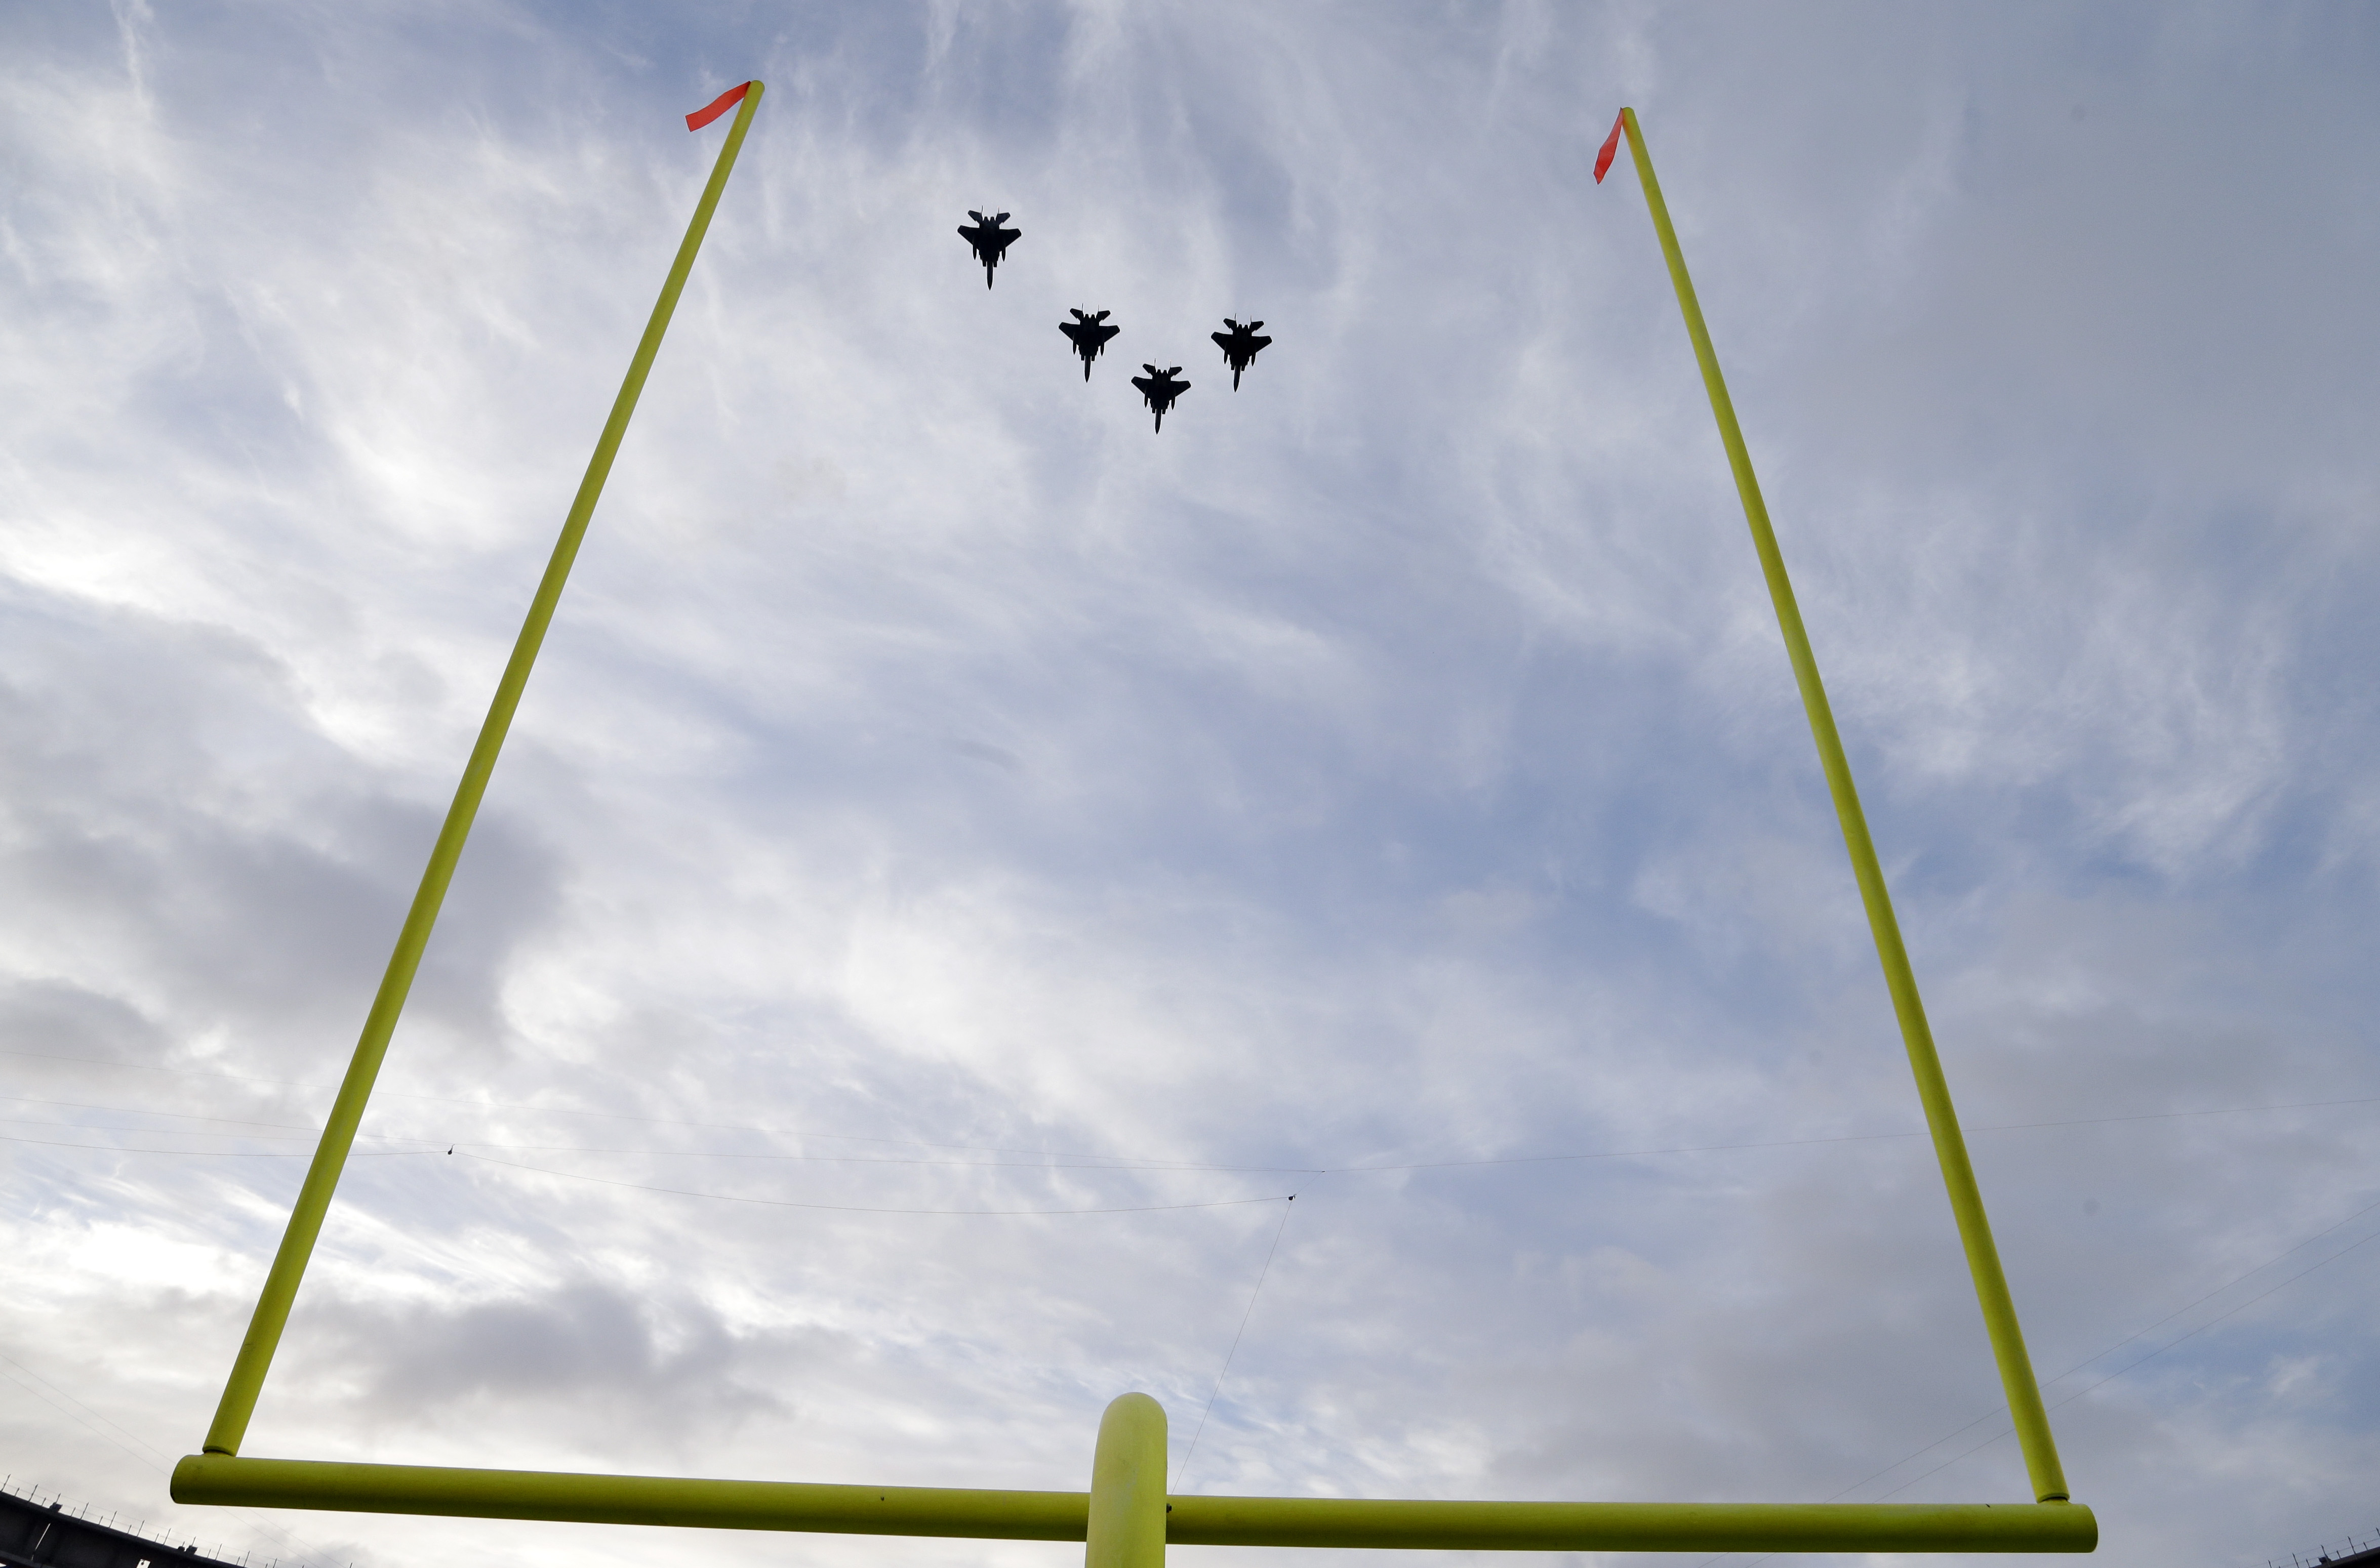 'It gets everyone amped up before kickoff': The process of procuring military flyovers